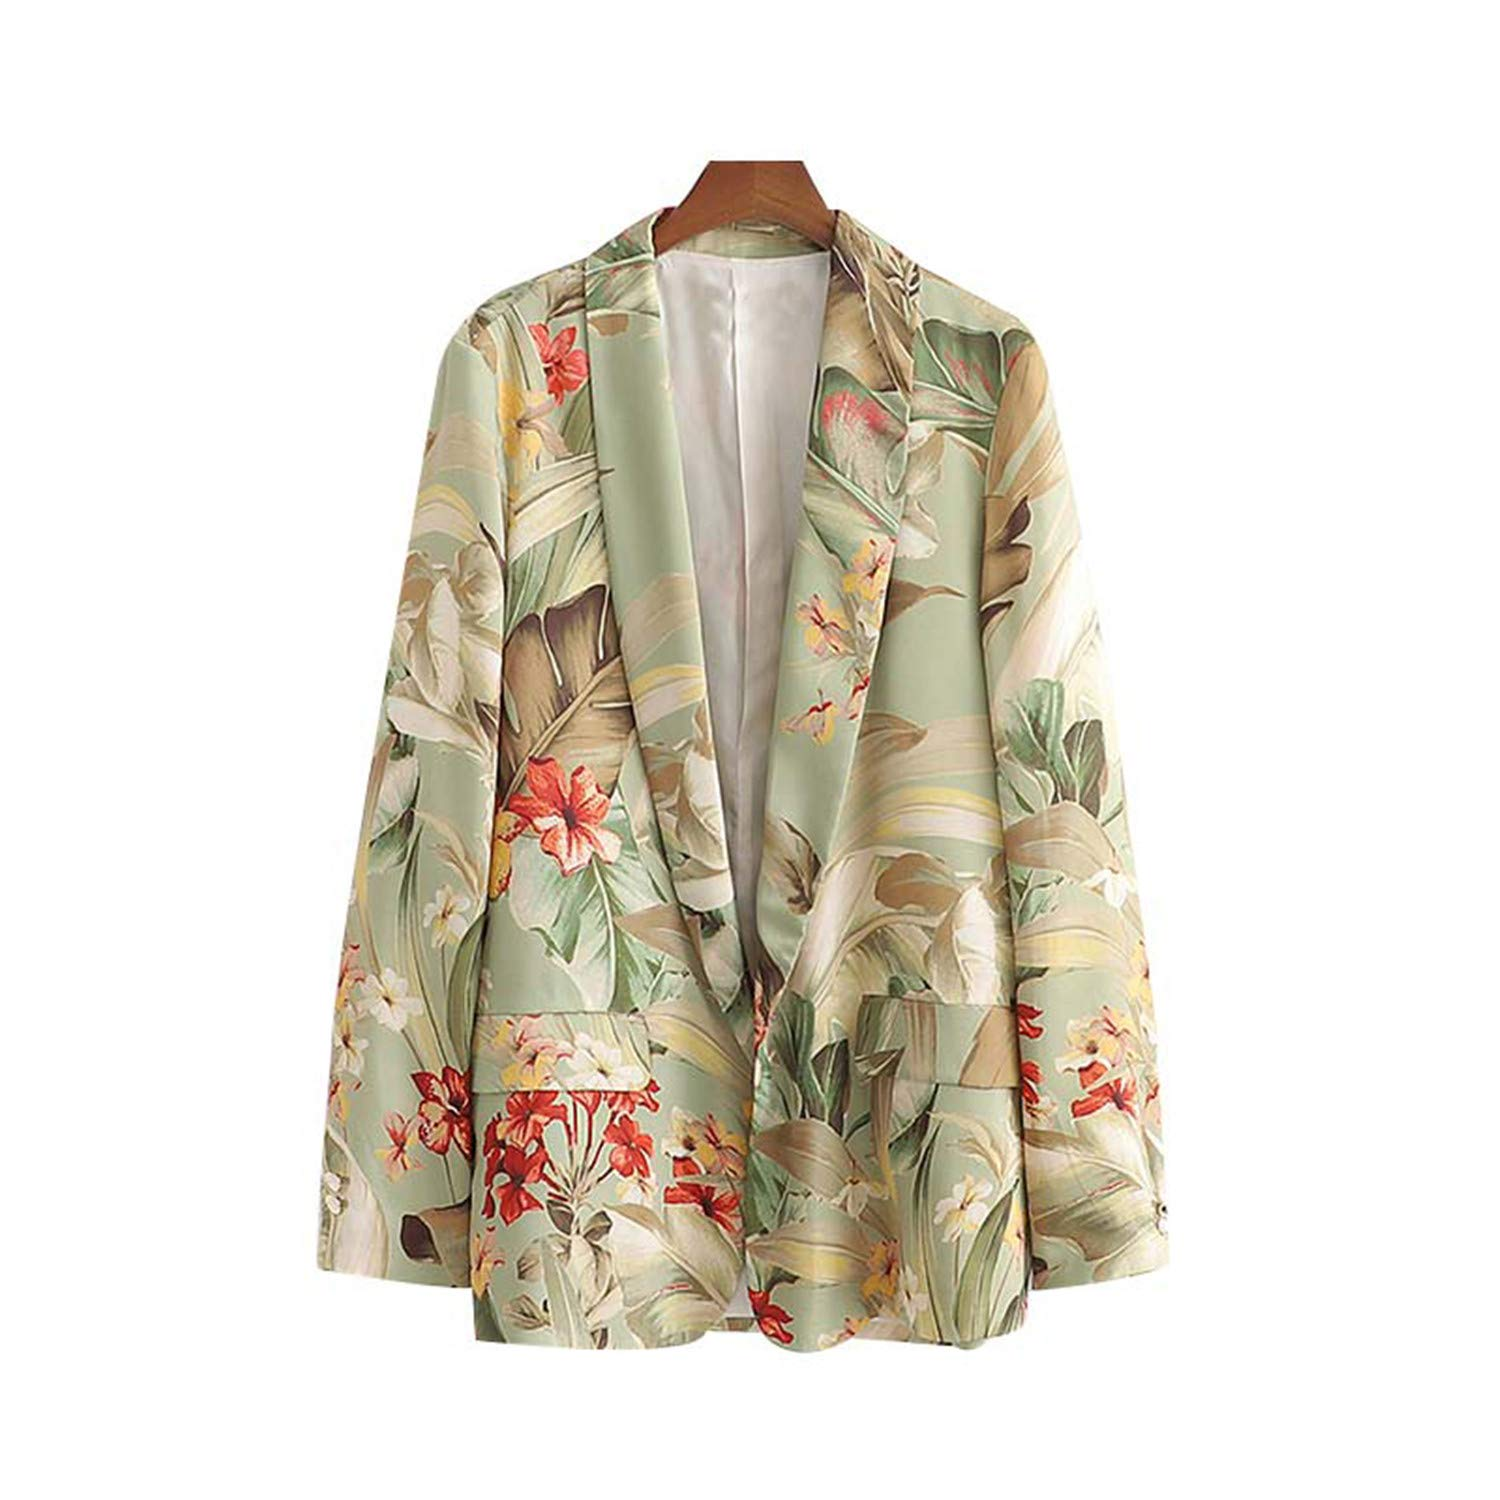 Women Floral Leaves Print Long Sleeve Blazer Notched Collar Pockets Elegant Women Casual Wear Top Blusas